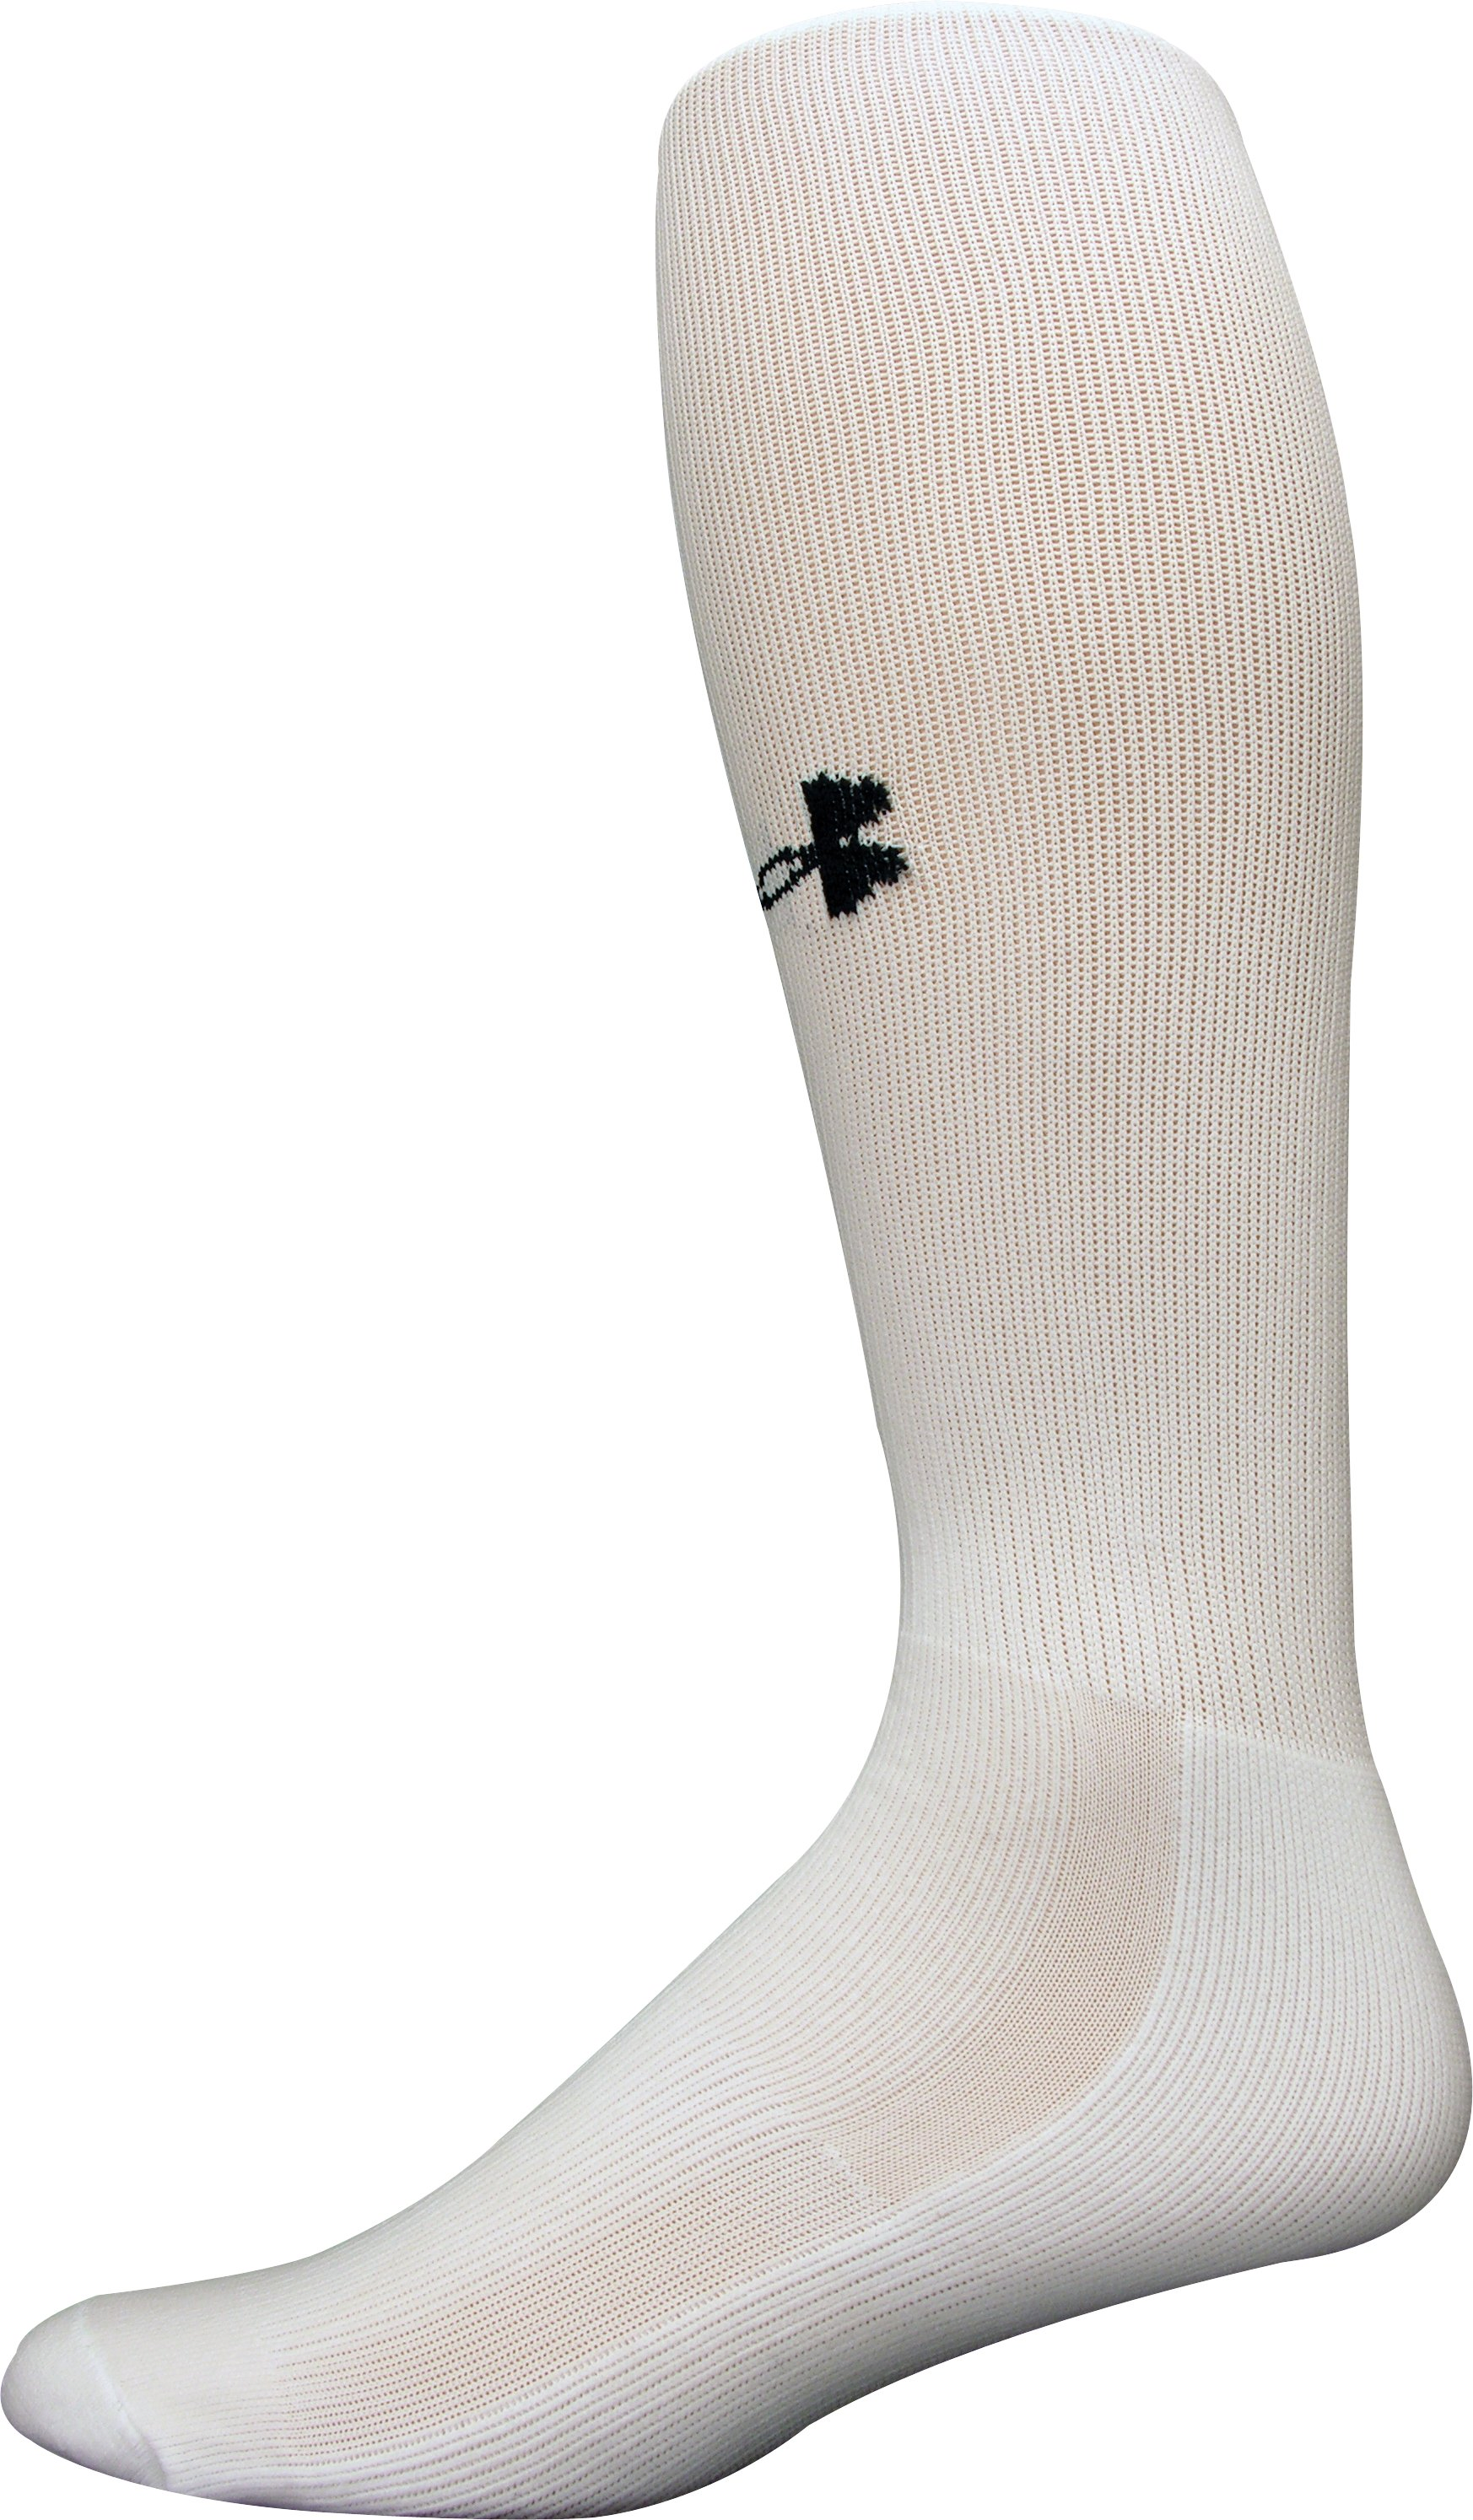 Men's Hockey Liner Socks, White, zoomed image